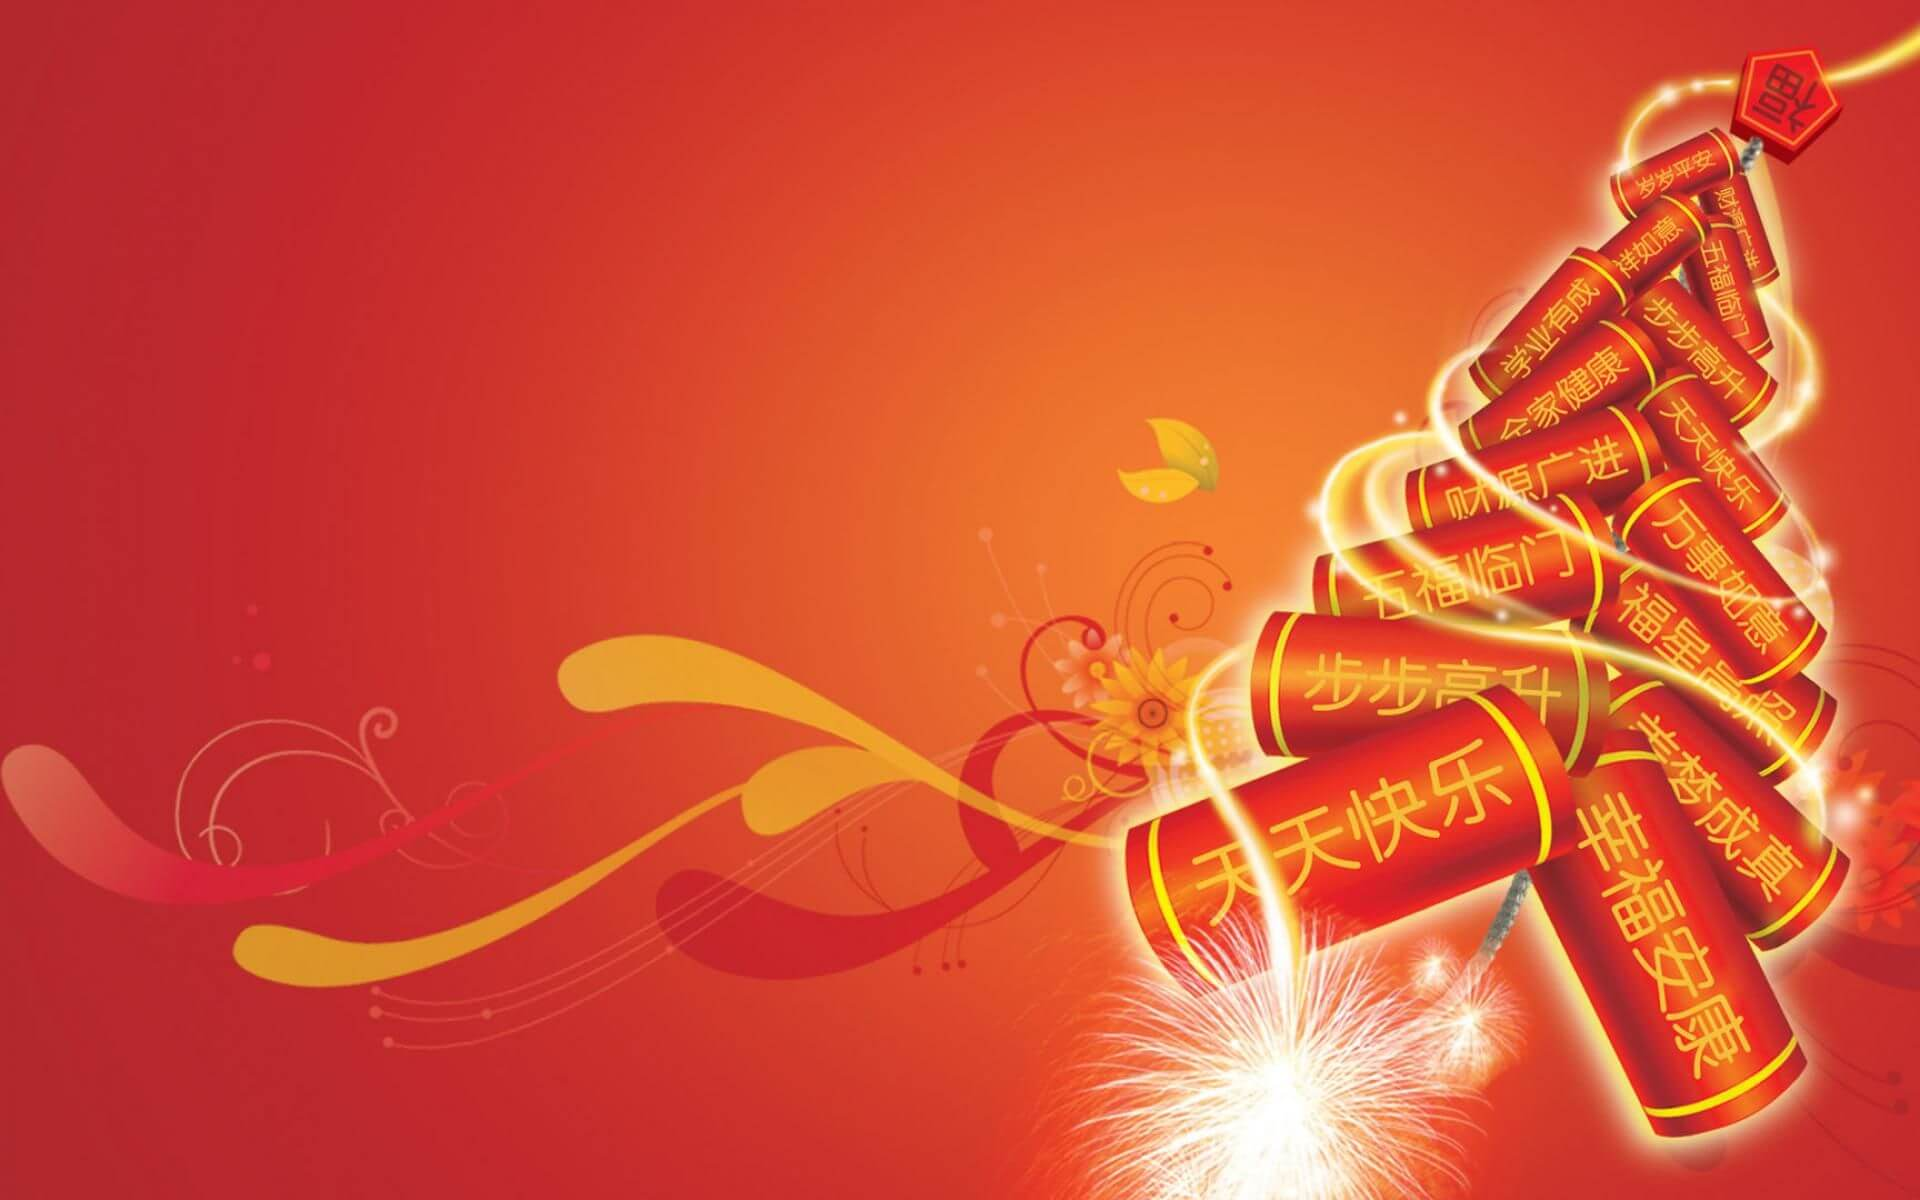 Happy New Year Wallpaper Download - Chinese New Year Background Gif , HD Wallpaper & Backgrounds